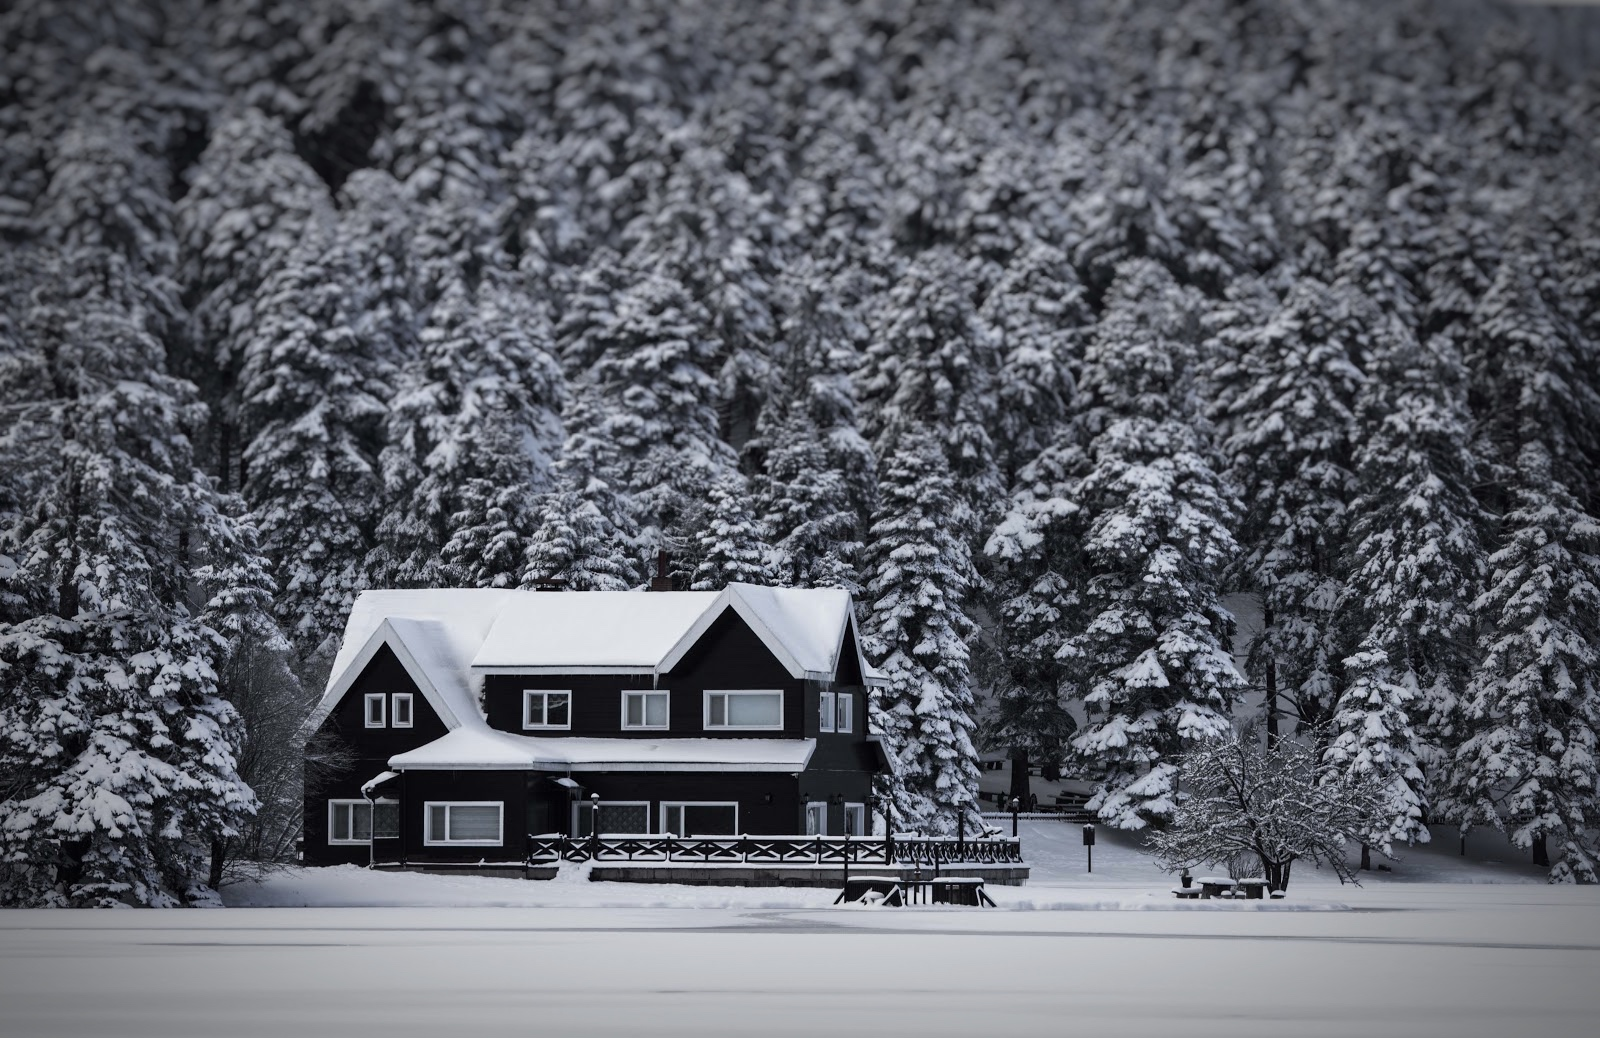 home surrounded by snow-covered trees